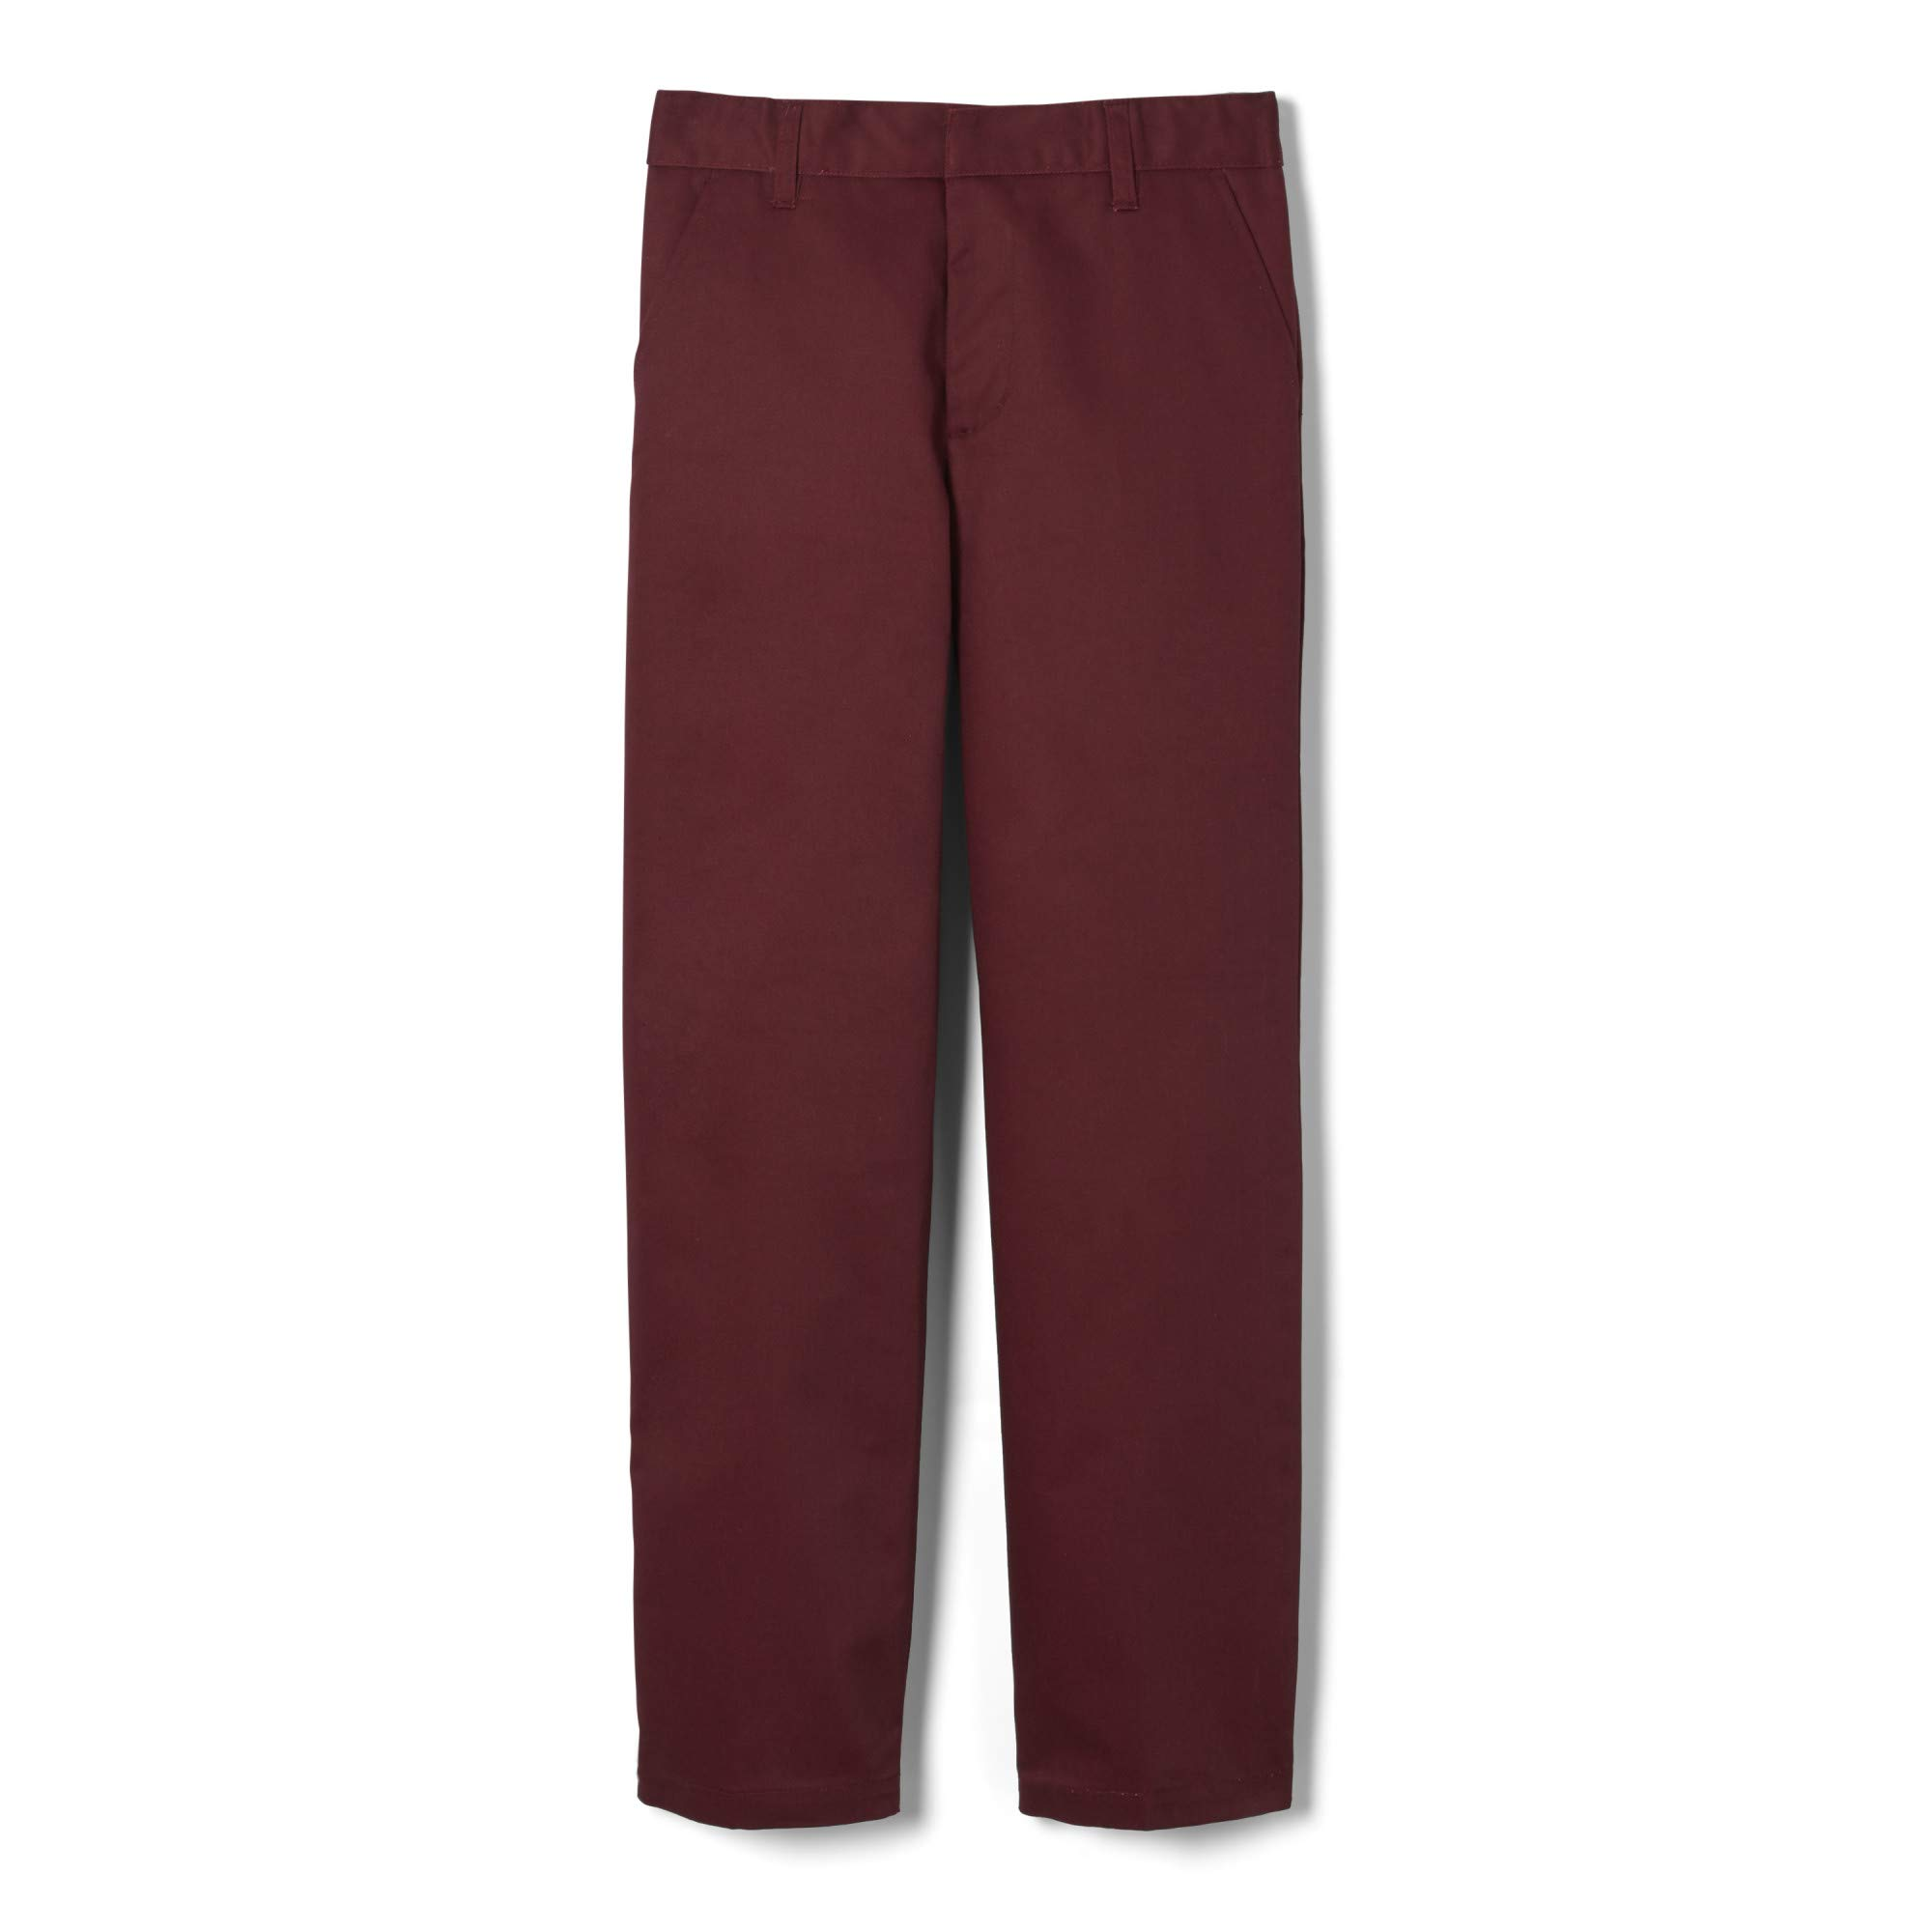 French Toast Boys' Adjustable Waist Work Wear Finish Relaxed Fit Pant (Standard & Husky)